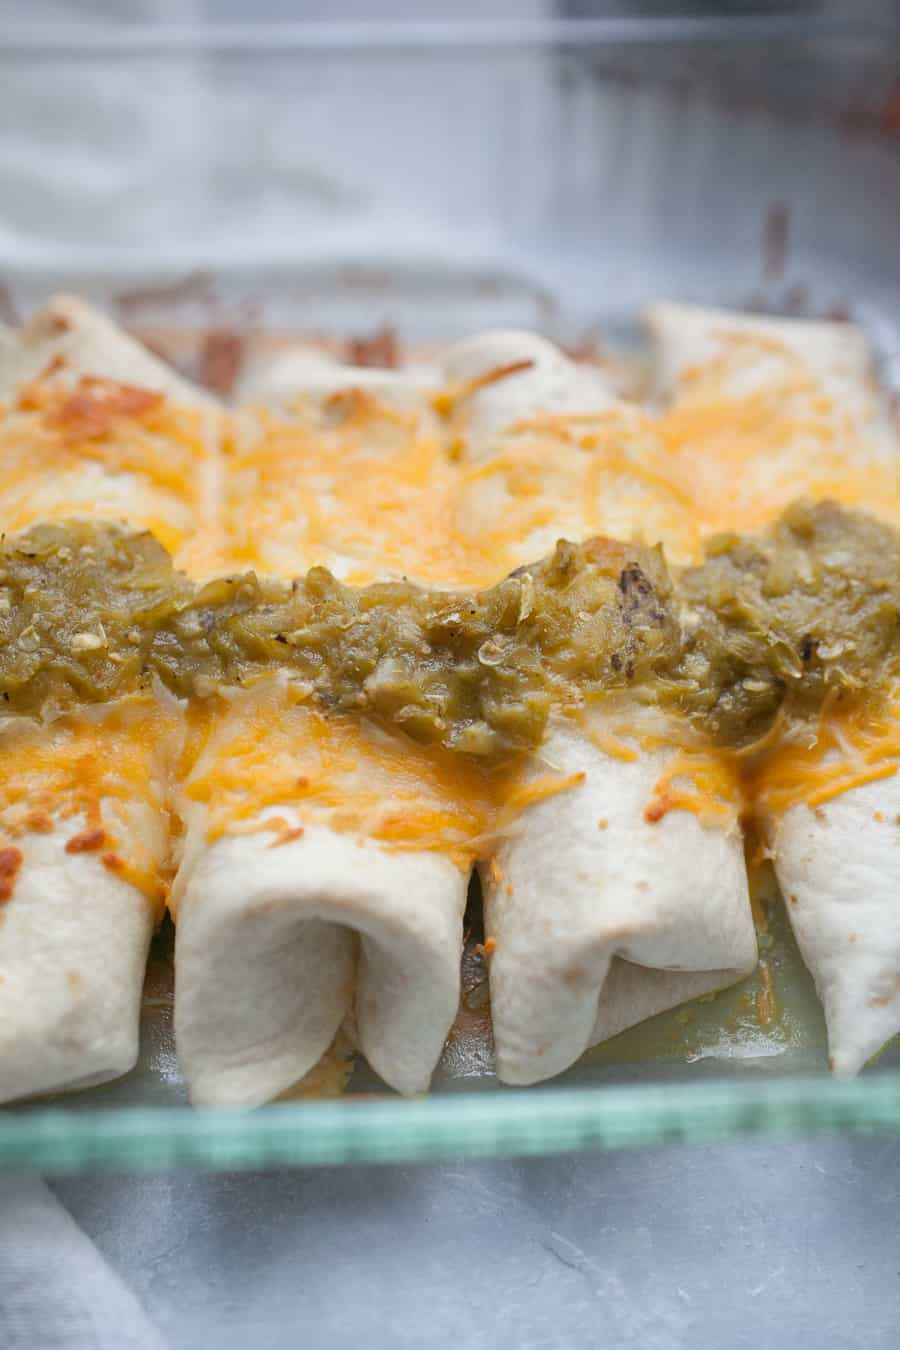 Sour Cream Chicken Enchiladas are the perfect weeknight dinner that will gather your family around the table. These enchiladas are made with flour tortillas, instead of traditionally used corn tortillas, and are stuffed with shredded chicken mixed with cream of chicken soup, sour cream, and cheese. The whole dish is topped with cheese and spicy green chile sauce! It's packed with flavor and the perfect dish for your family!?